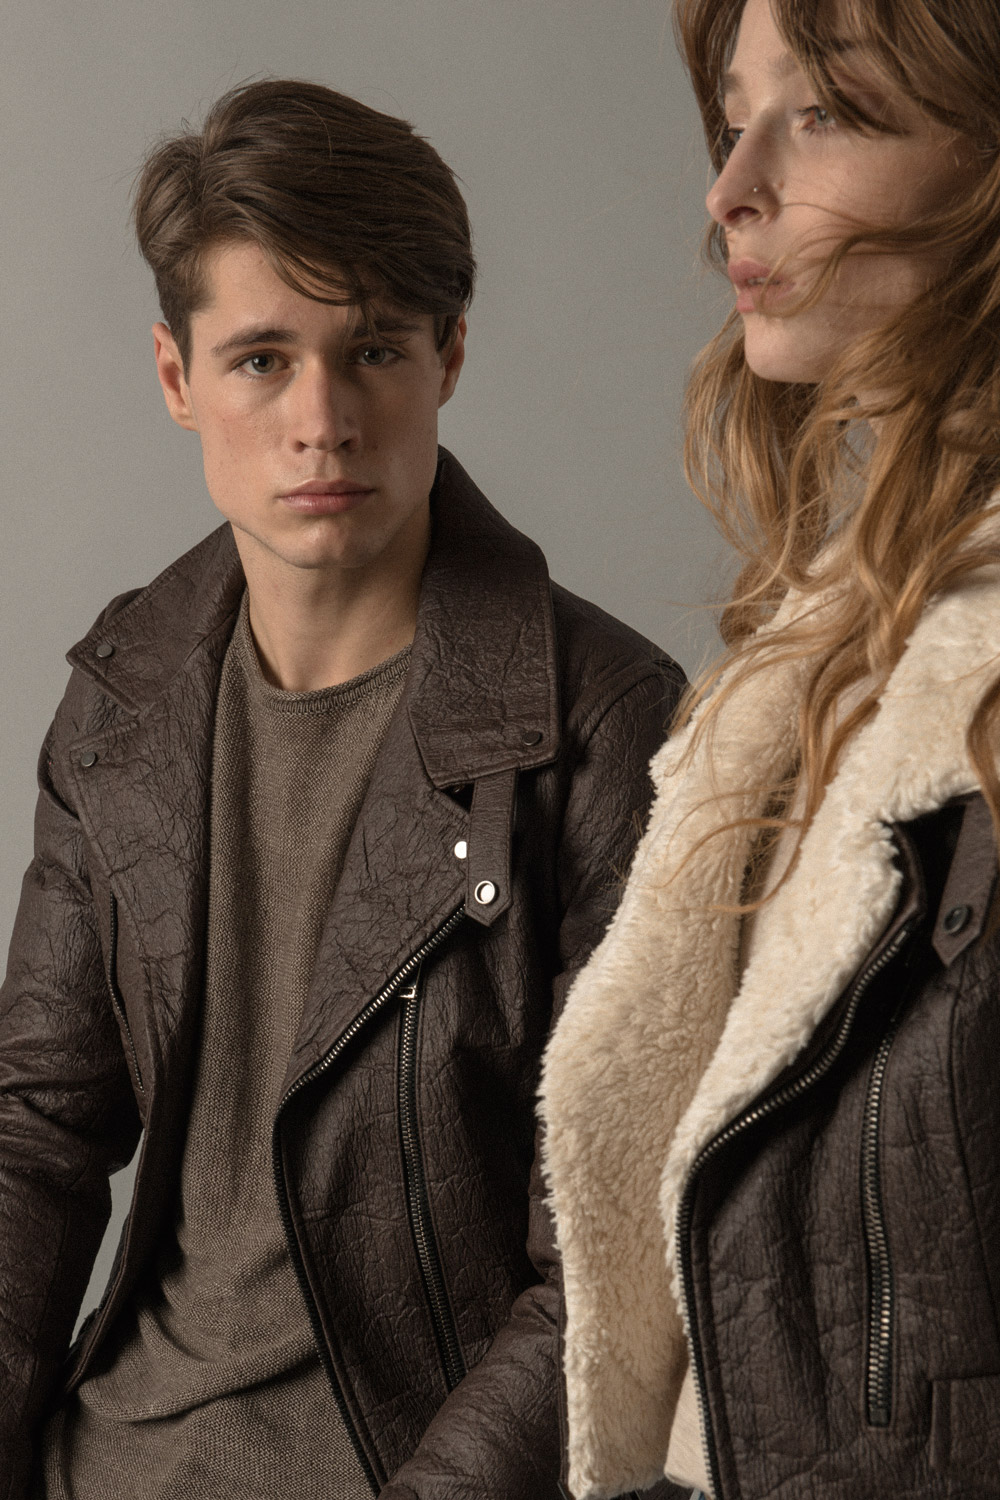 Altiir, a vegan leather brand featured coats made of pineapple leather. Photo  via